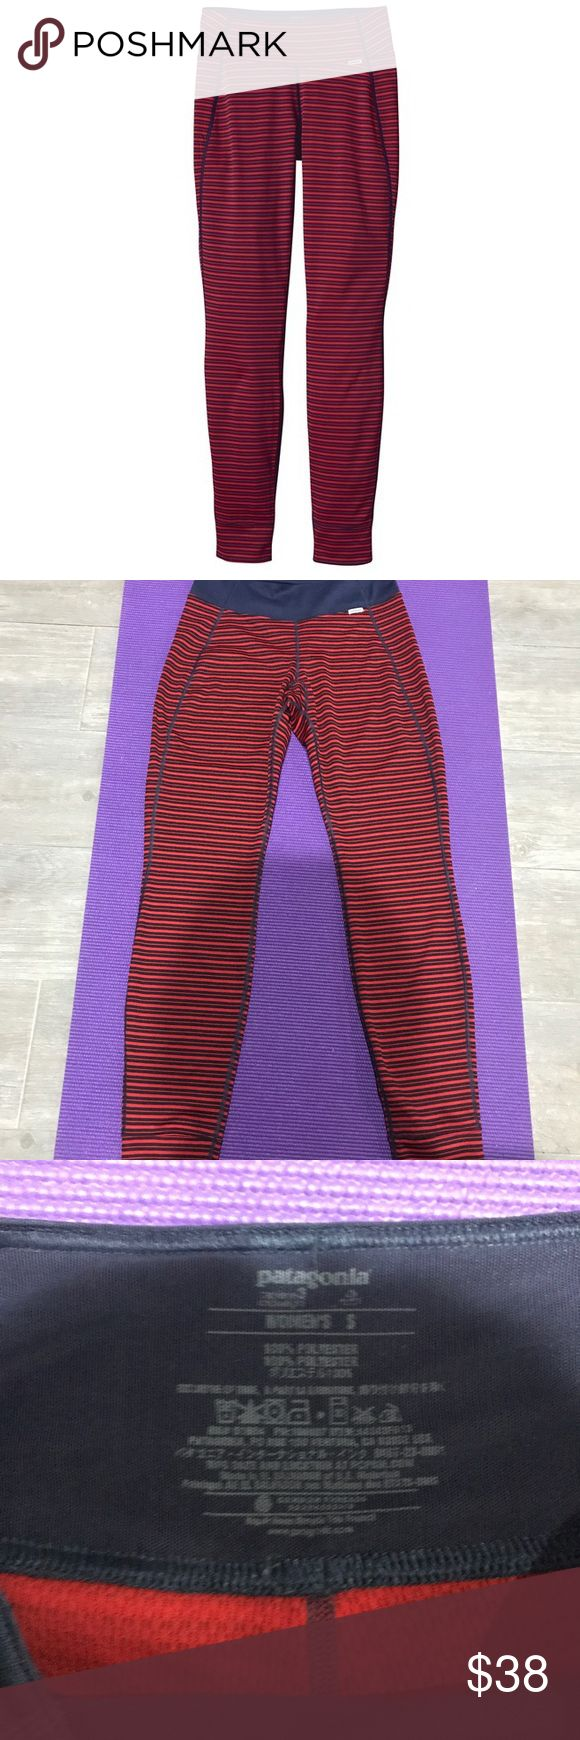 Patagonia leggings Patagonia Capilene 3 Midweight.   Retail for $80 + tax.                    MATERIAL: 5.4-oz Polartec Power Dry 100% Polyester – Solids: 65% Recycled / Heathers: 51% Recycled / Stripes: 56% Recycled FIT: Slim fit FEATURES: Stretchy double-knit fabric wicks extremely well. Durable smooth jersey face slides easily beneath layers. Fabric is brushed for softness and compressibility; provides excellent insulation and breathability. Patagonia Pants Leggings